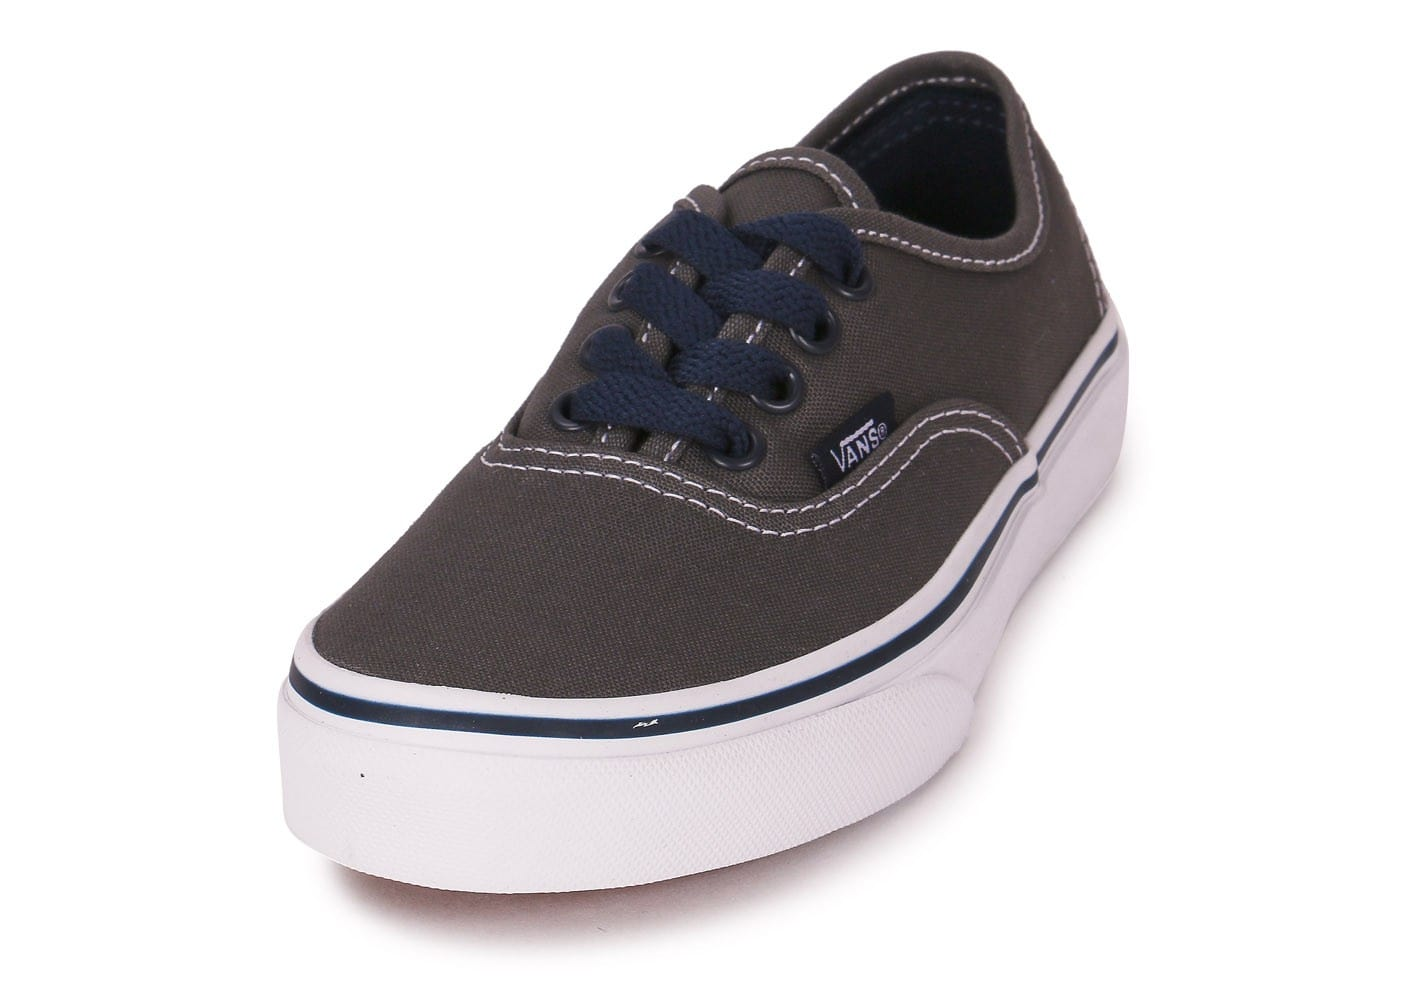 soldes vans authentic enfant grise chaussures toutes les baskets sold es chausport. Black Bedroom Furniture Sets. Home Design Ideas